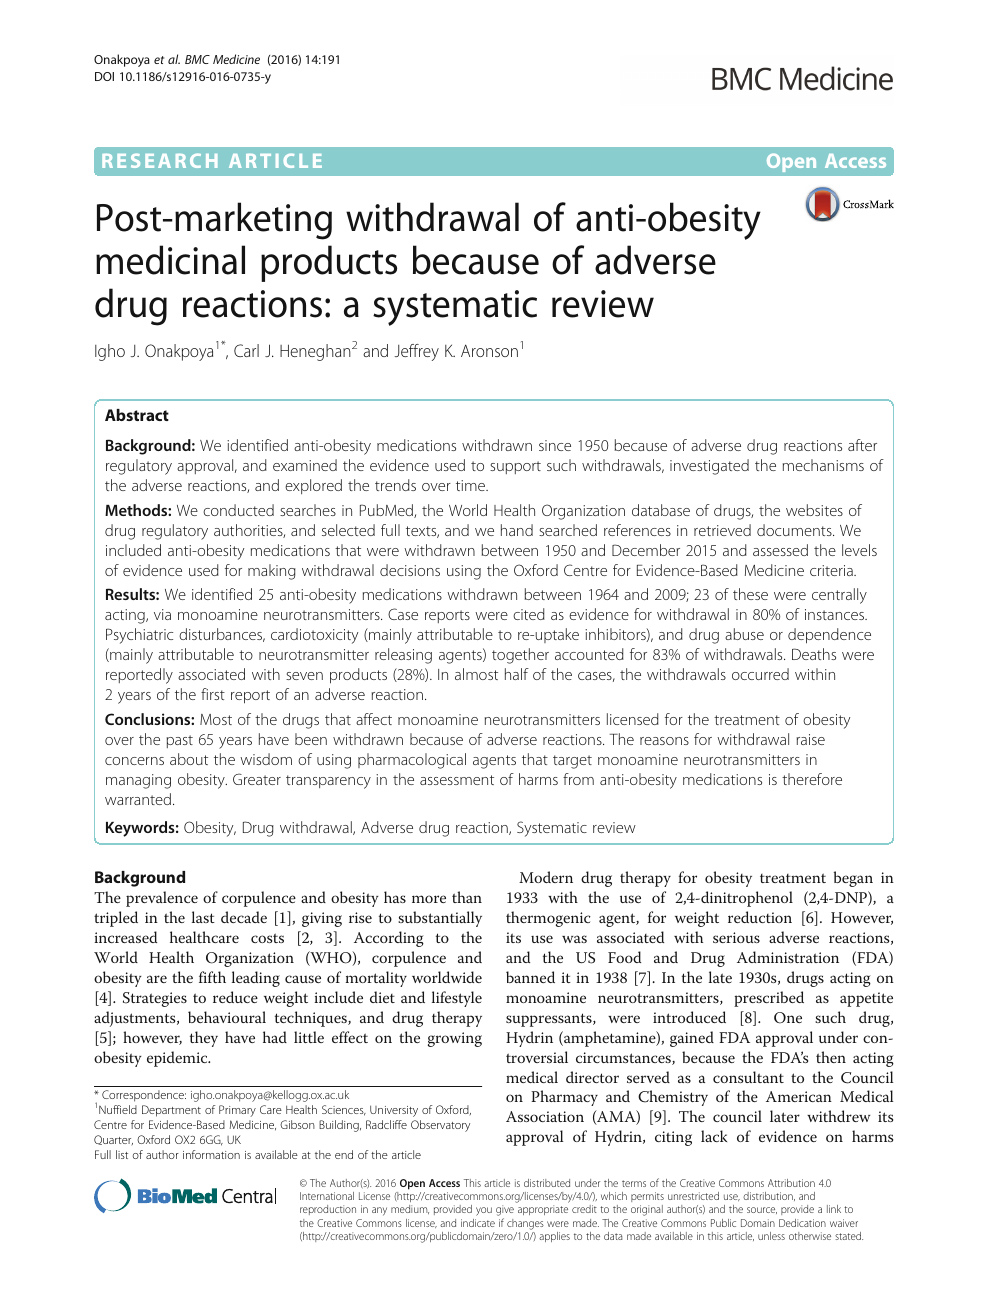 Post-marketing withdrawal of anti-obesity medicinal products